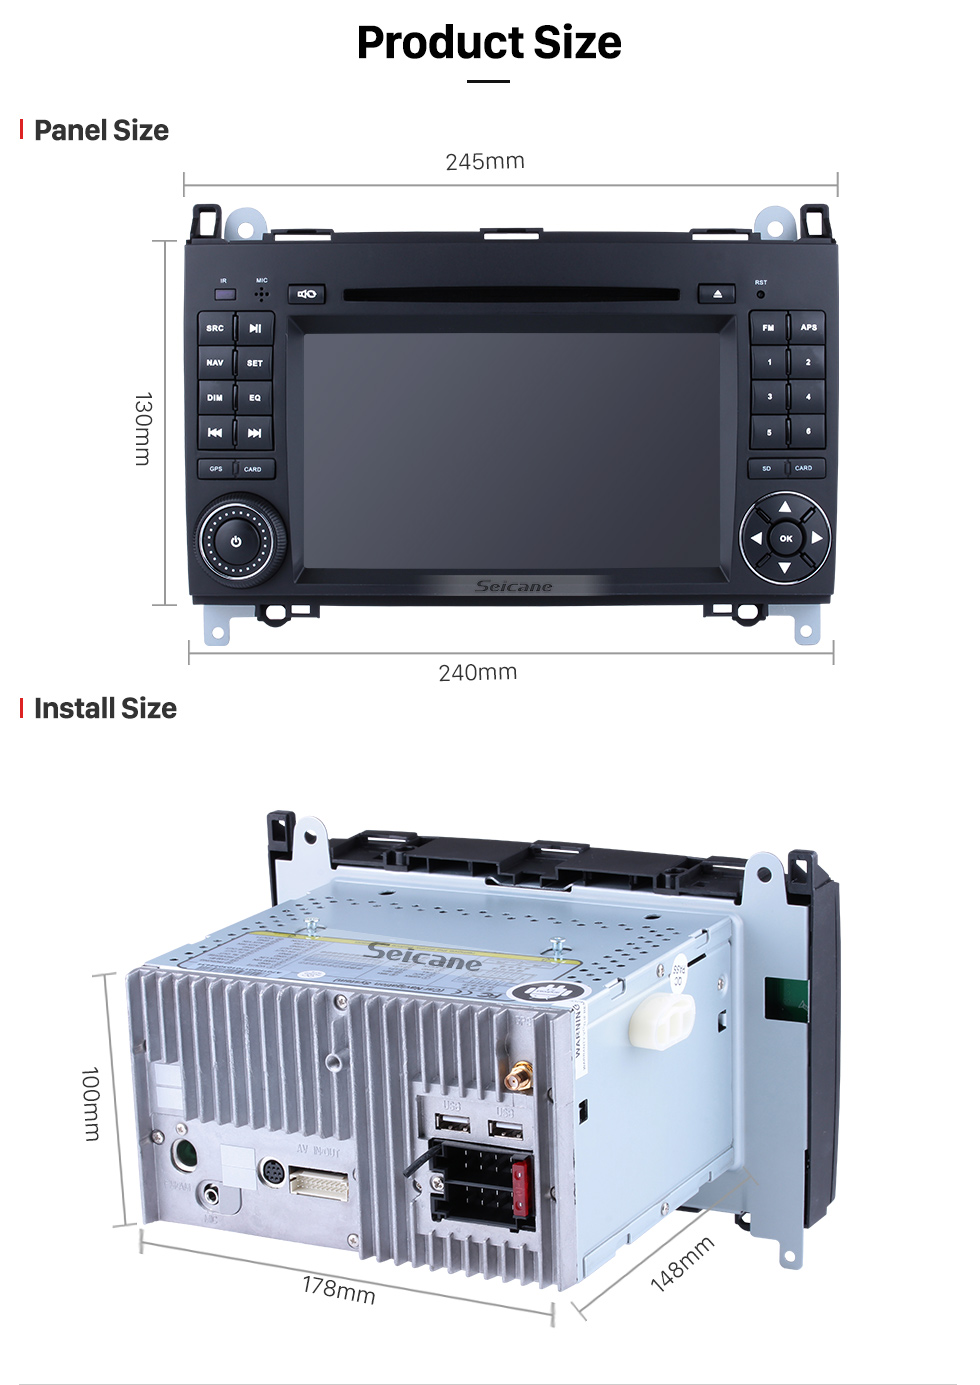 Seicane All in one Android 8.0 Radio DVD Play GPS Stereo Upgrade for 2004-2012 Mercedes Benz B Class W245 B160 B180 B200 Support Bluetooth FM AM USB WIFI Backup Camera DVR OBD2 Mirror Link Steering wheel control